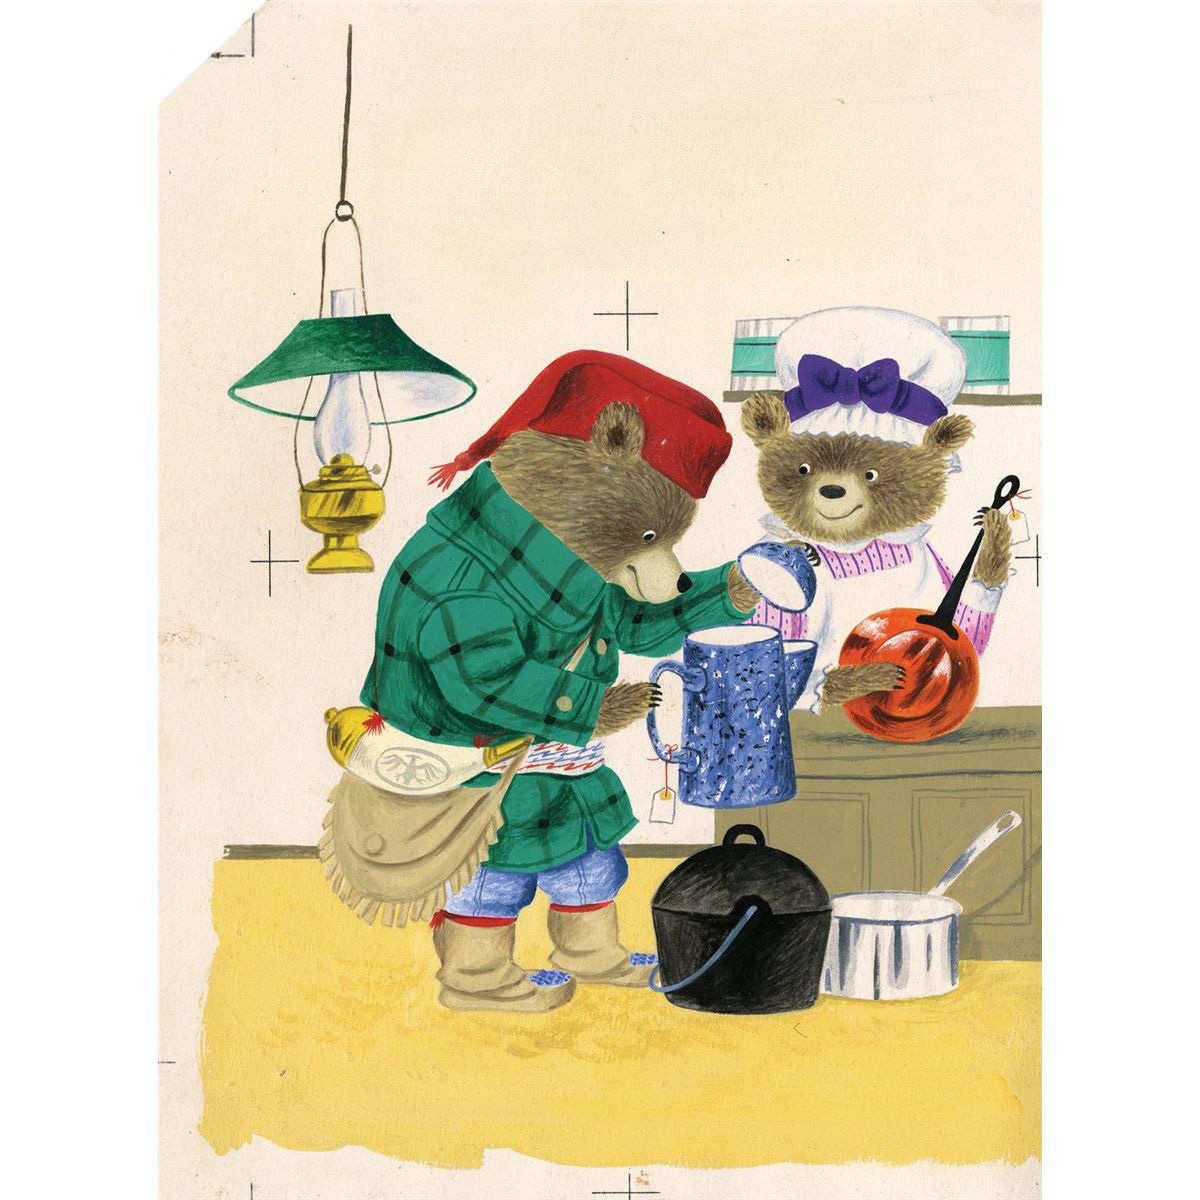 Original painting by Richard Scarry